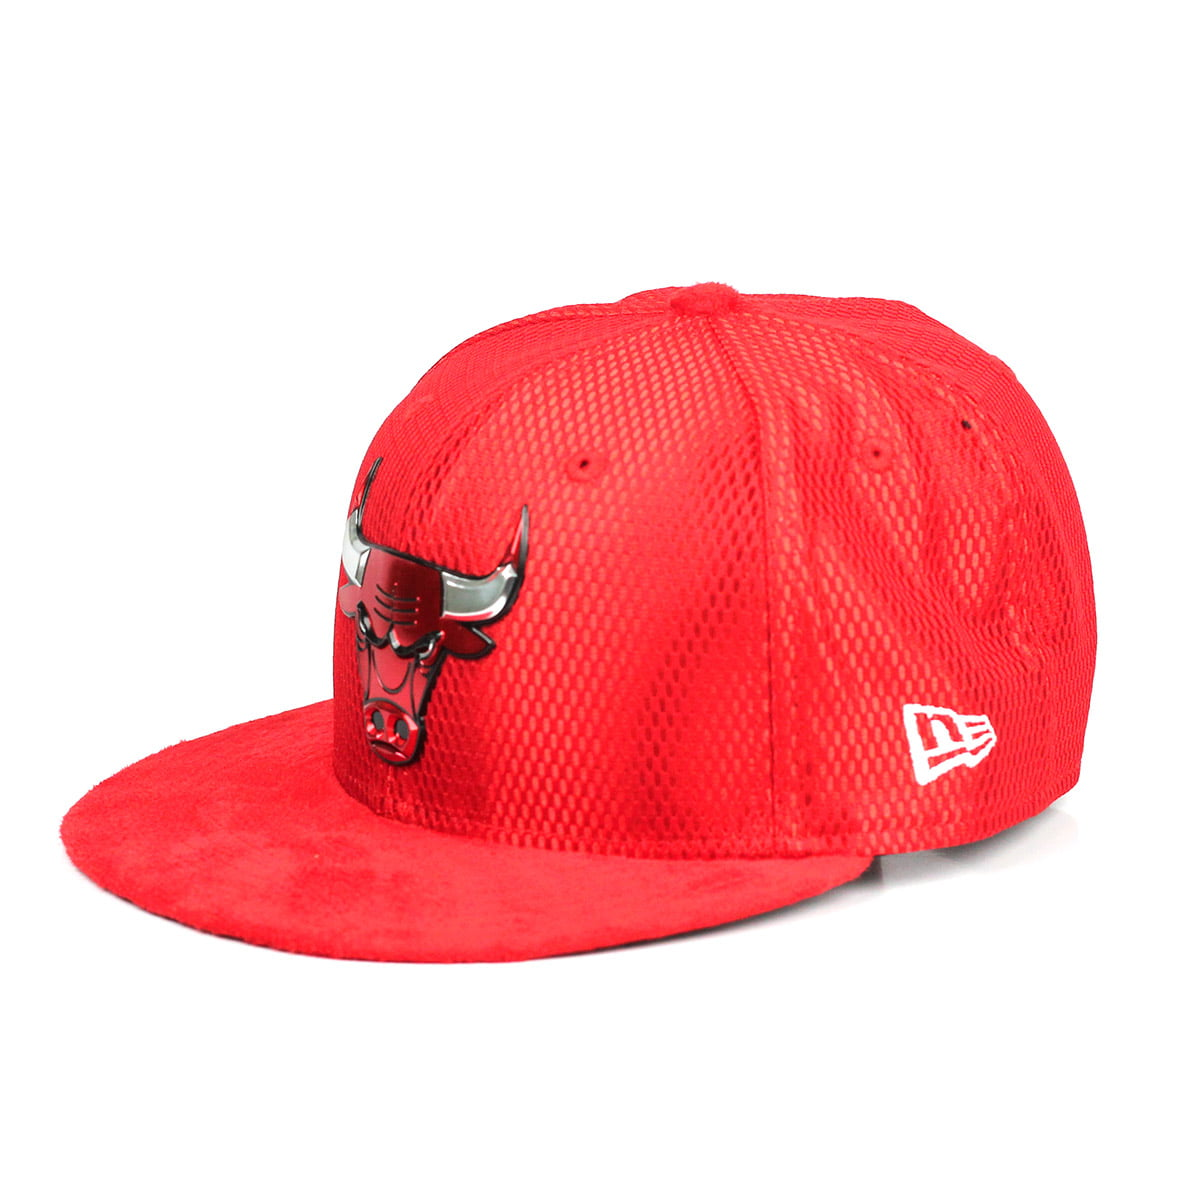 Bone Chicago Bulls New Era 9fifty nba 17 on court